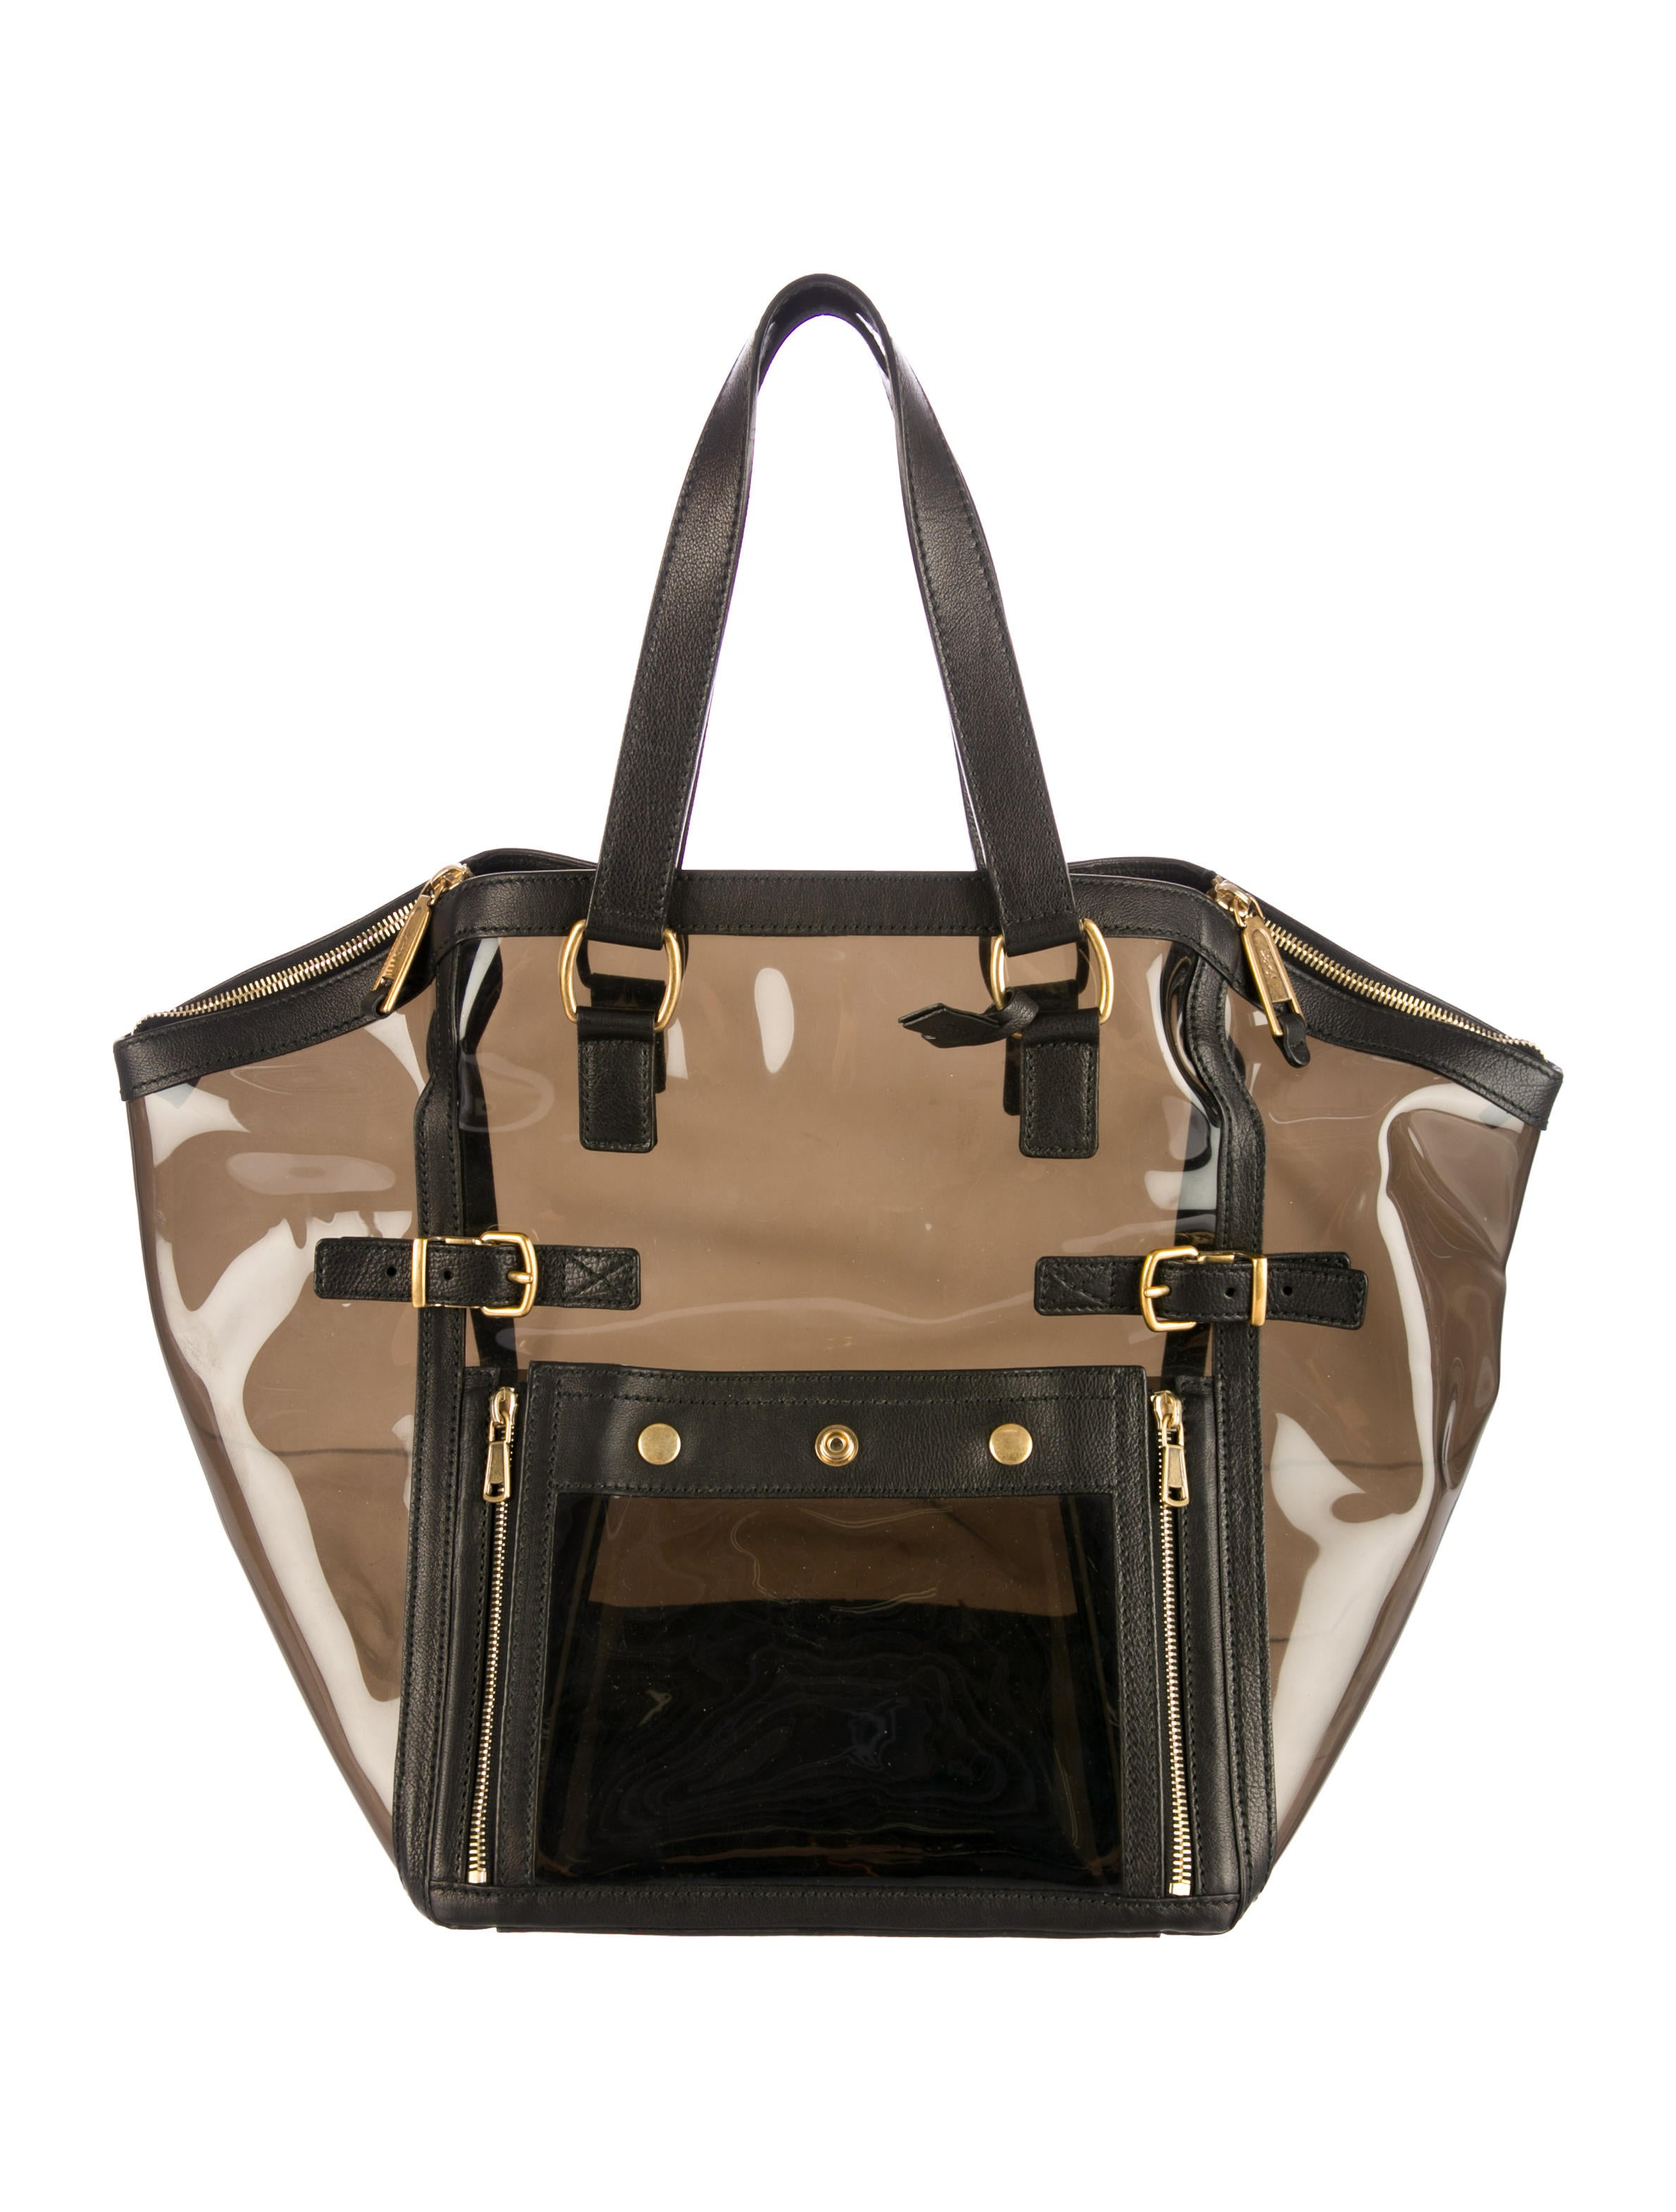 yves saint laurent pvc downtown tote handbags yve40926 the realreal. Black Bedroom Furniture Sets. Home Design Ideas